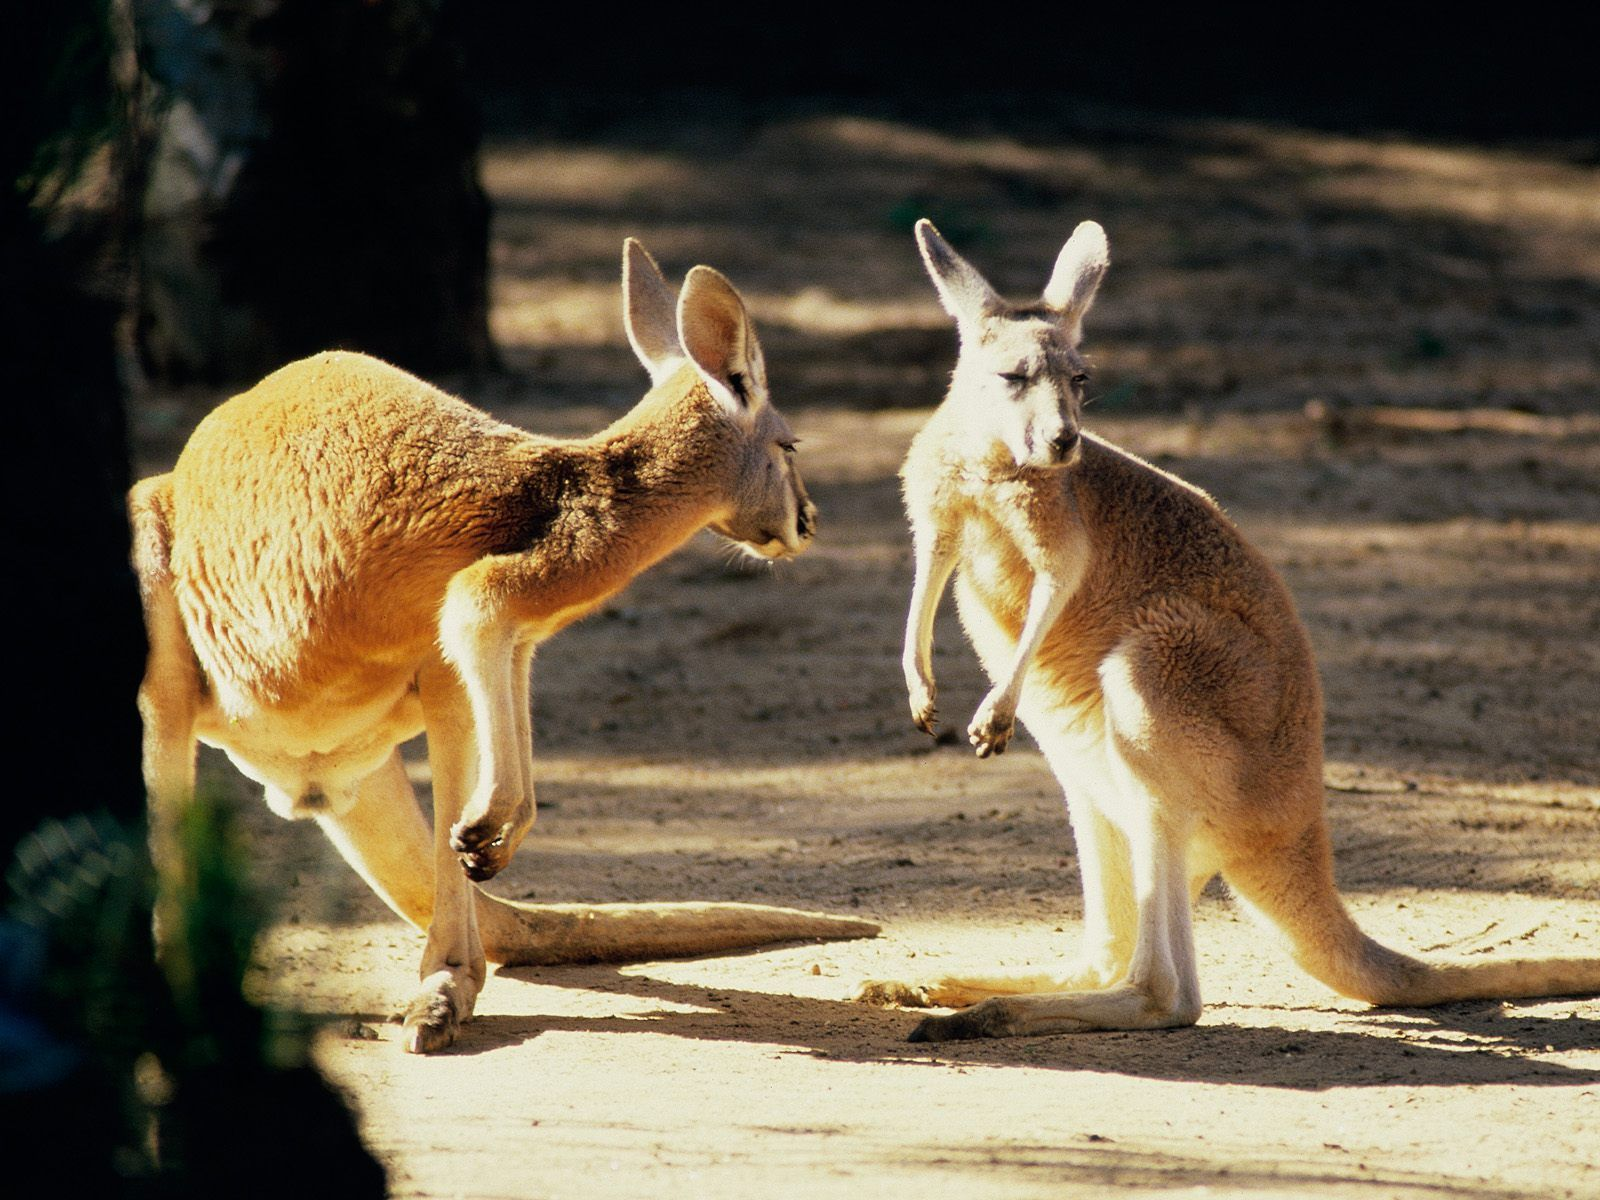 Click here to download in HD Format >> Kangaroo Conversation